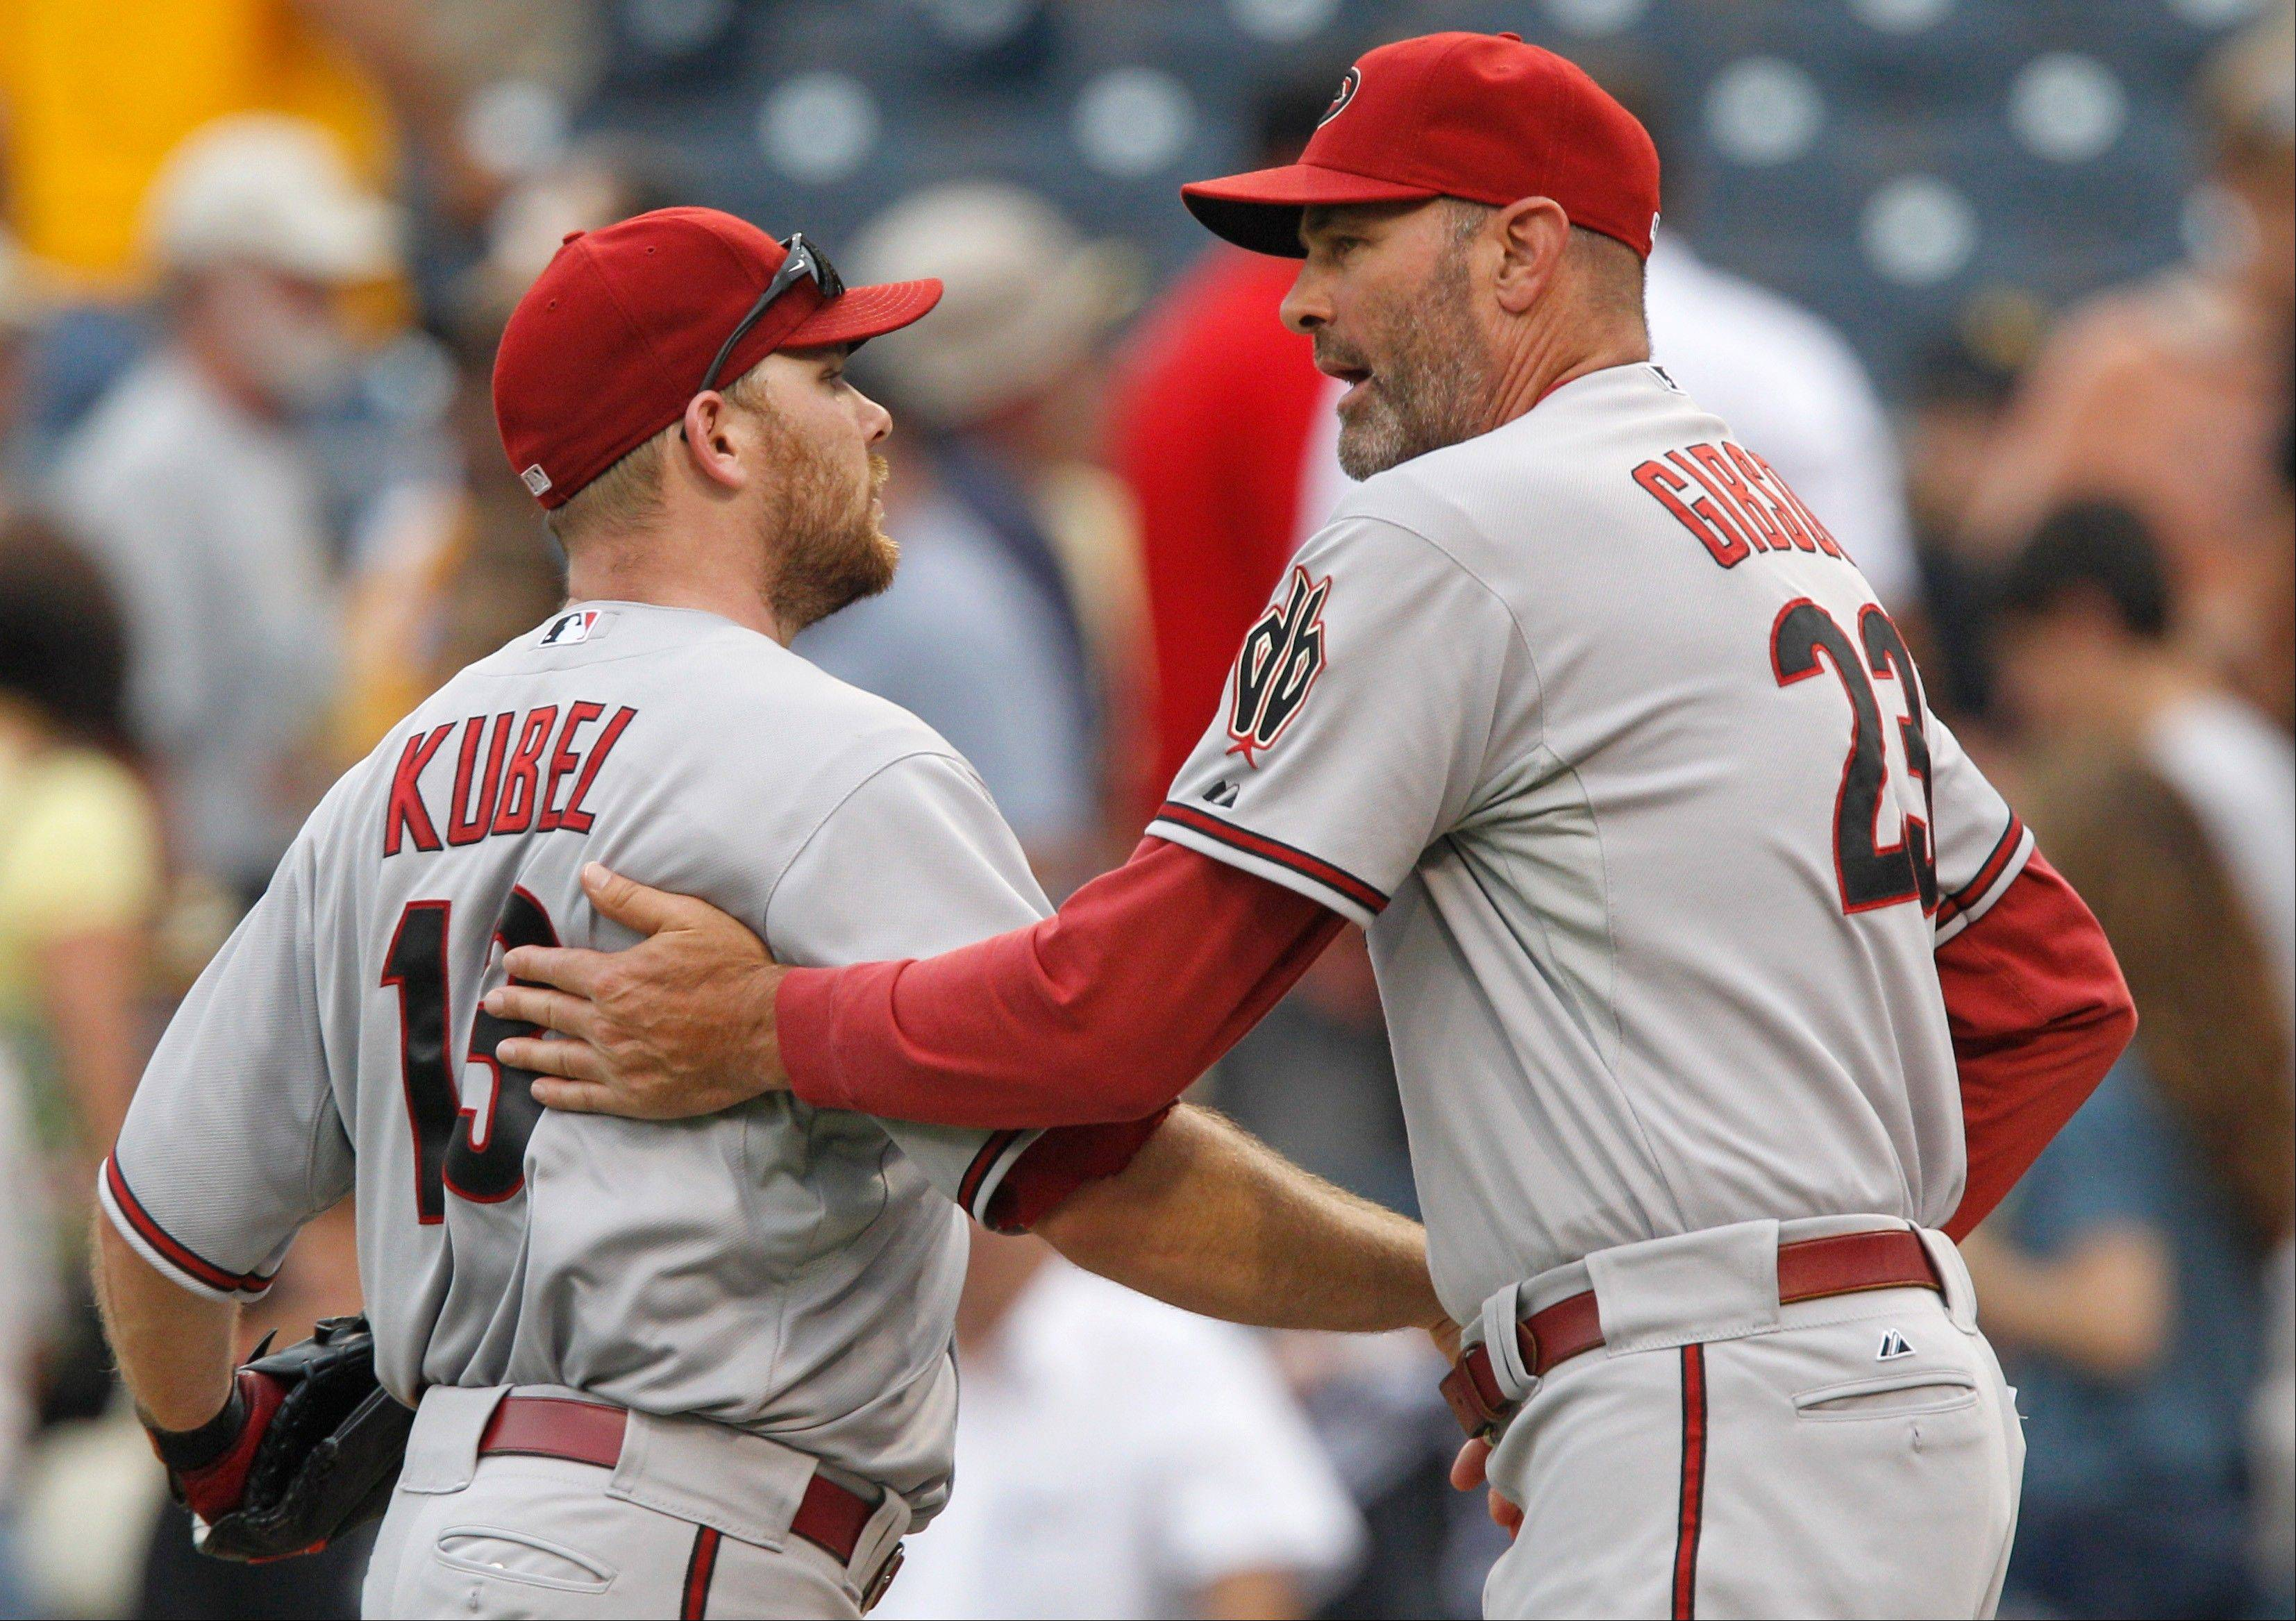 Diamondbacks manager Kirk Gibson, right, greets Jason Kubel after a win against the Pirates Thursday in Pittsburgh.